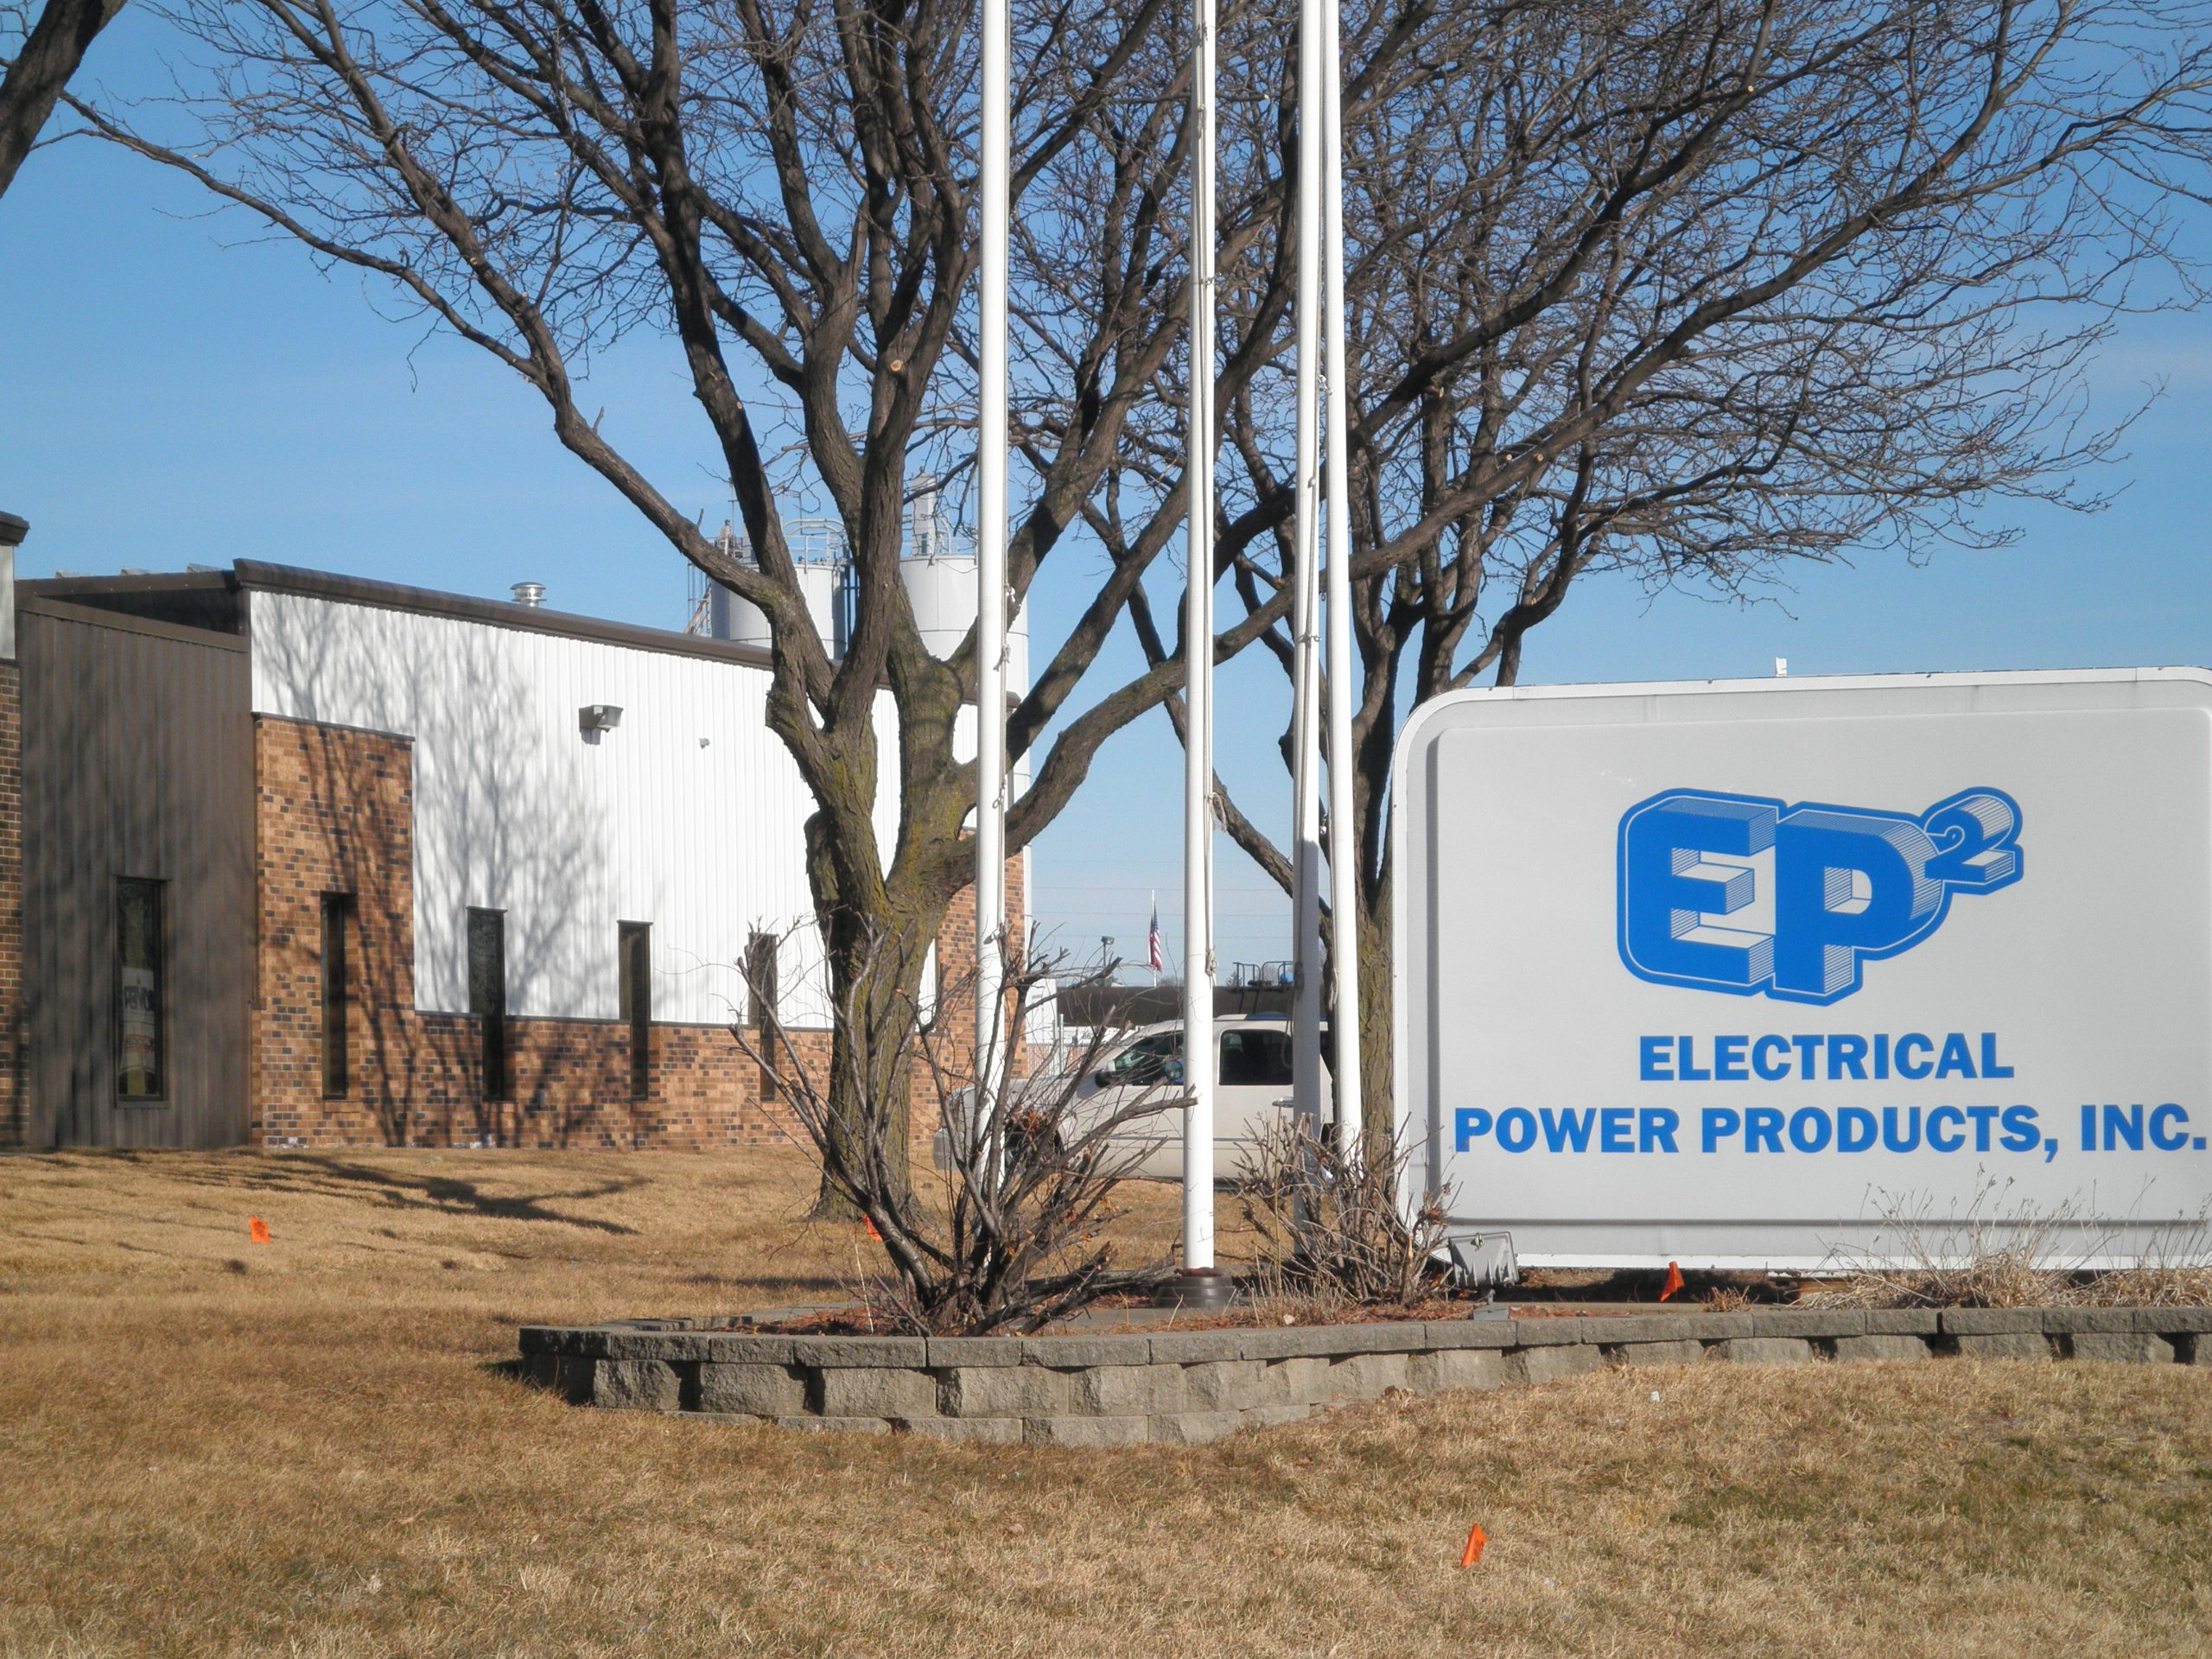 Electrical Power Products, Inc.